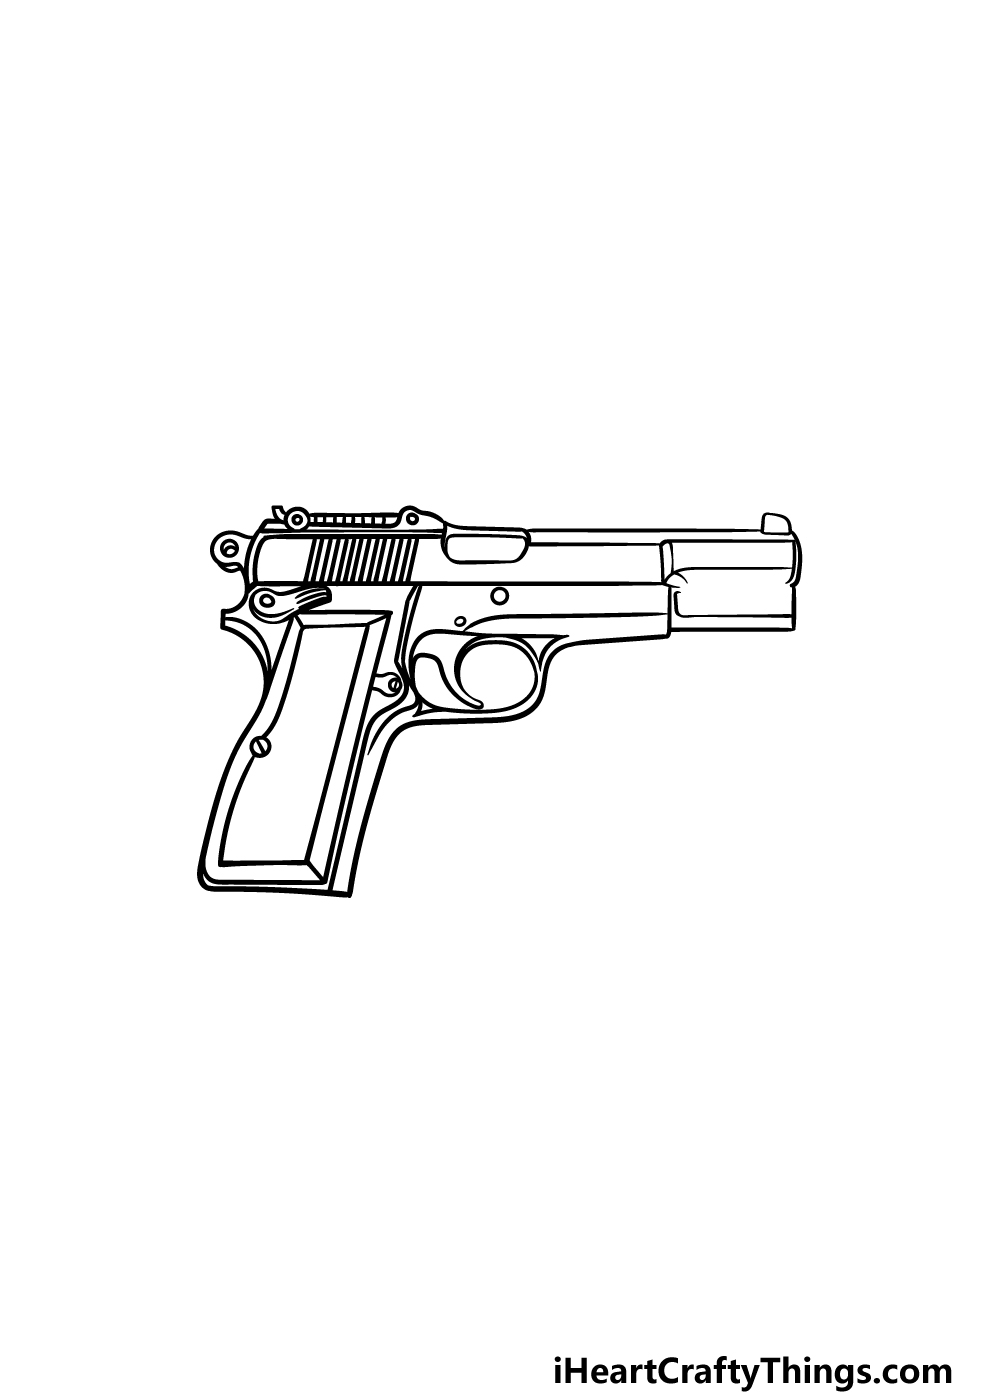 drawing a pistol step 5